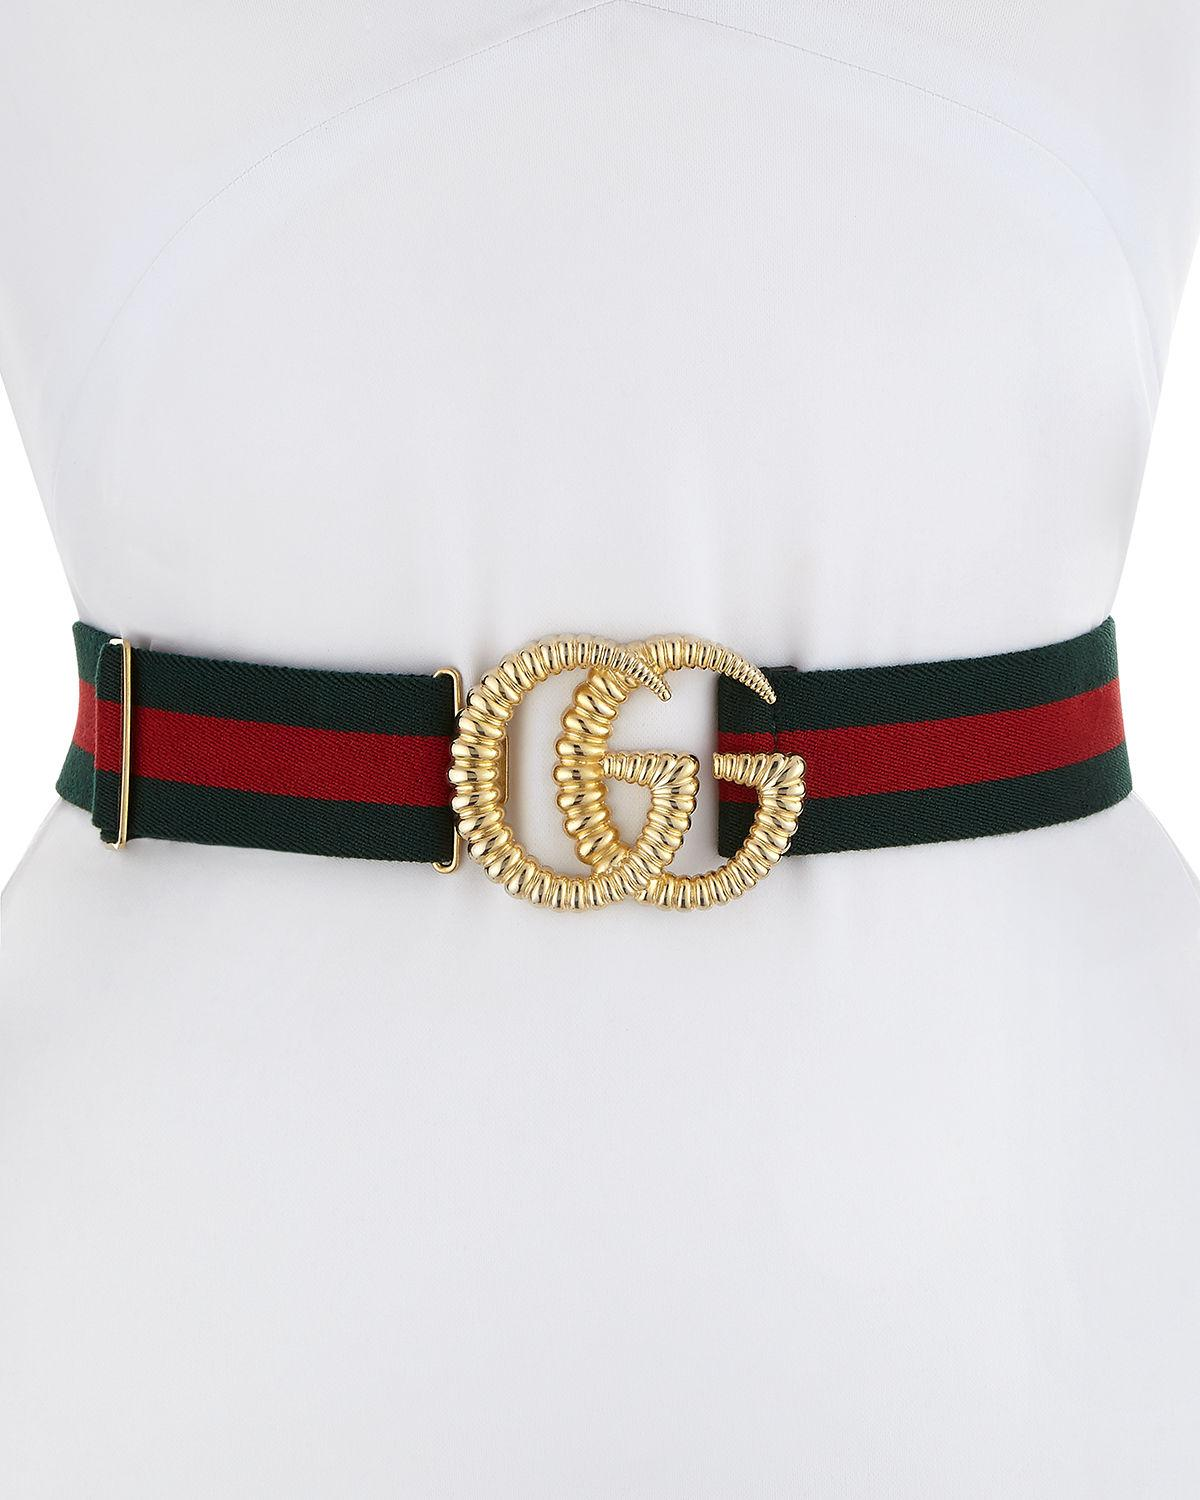 39f3fd866bb Gucci Piccadilly Moon Elastic Web Belt W  Textured Gg Buckle In  Multicoloured. MEMBER ONLY. 450Login to see price